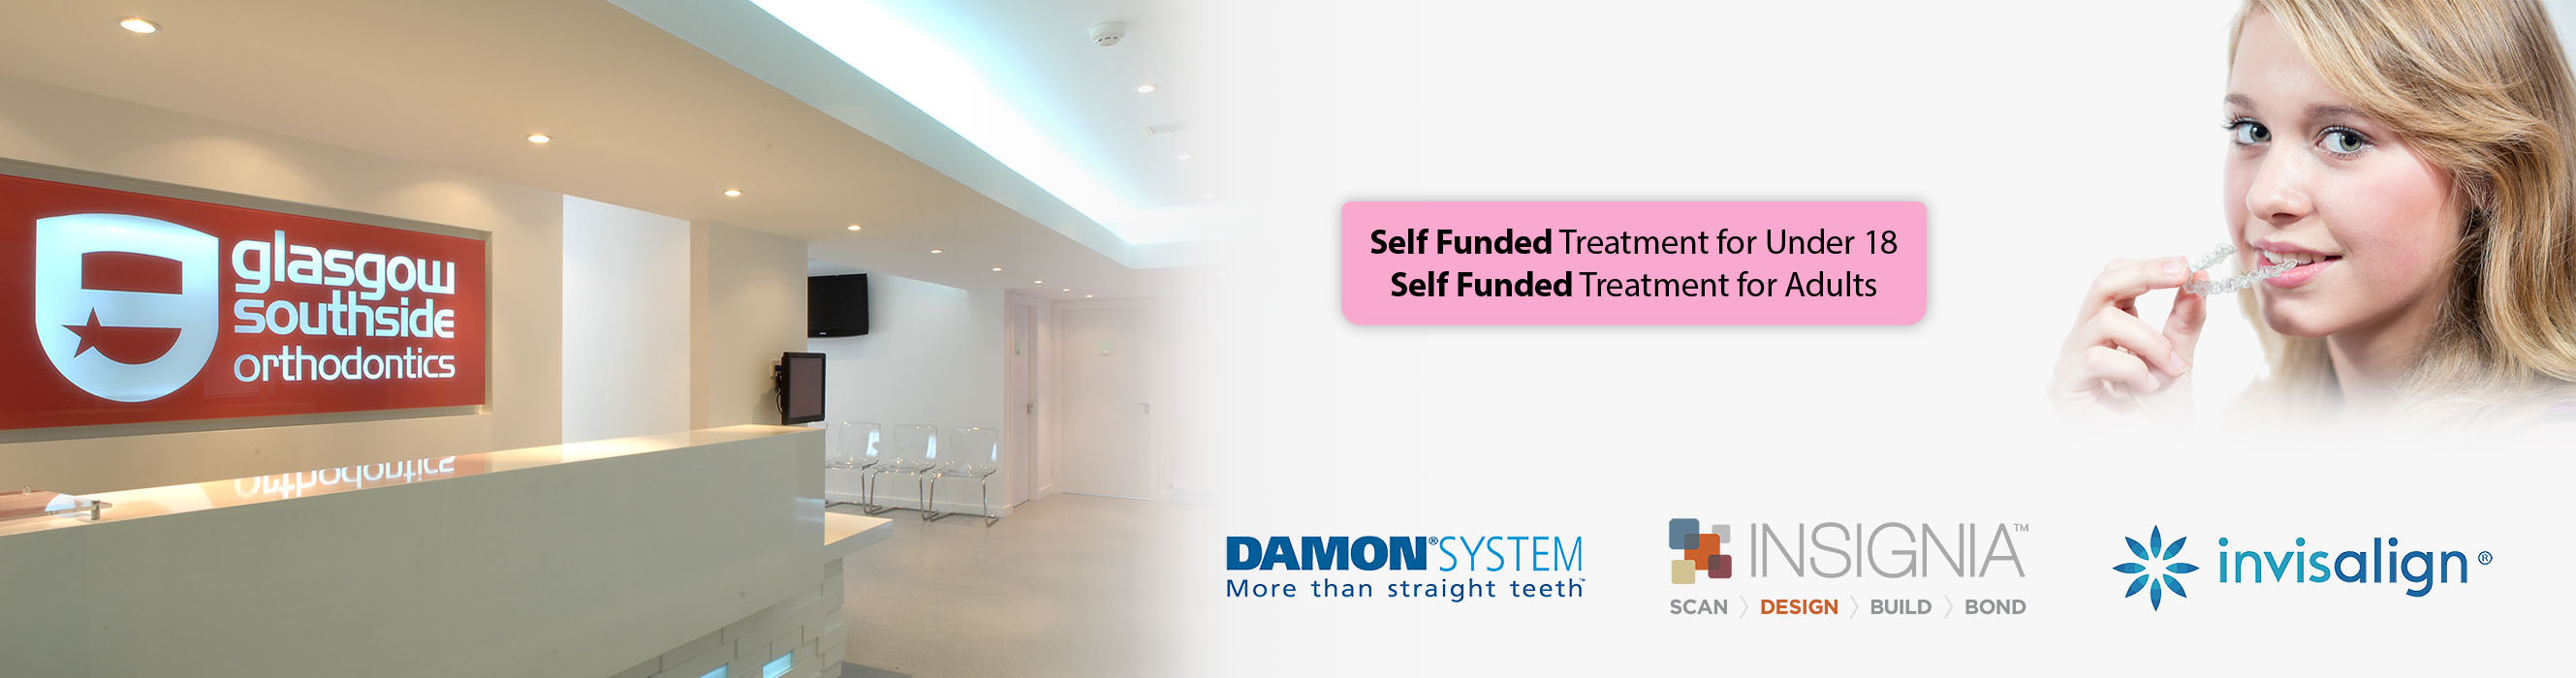 Self Funded Treatments